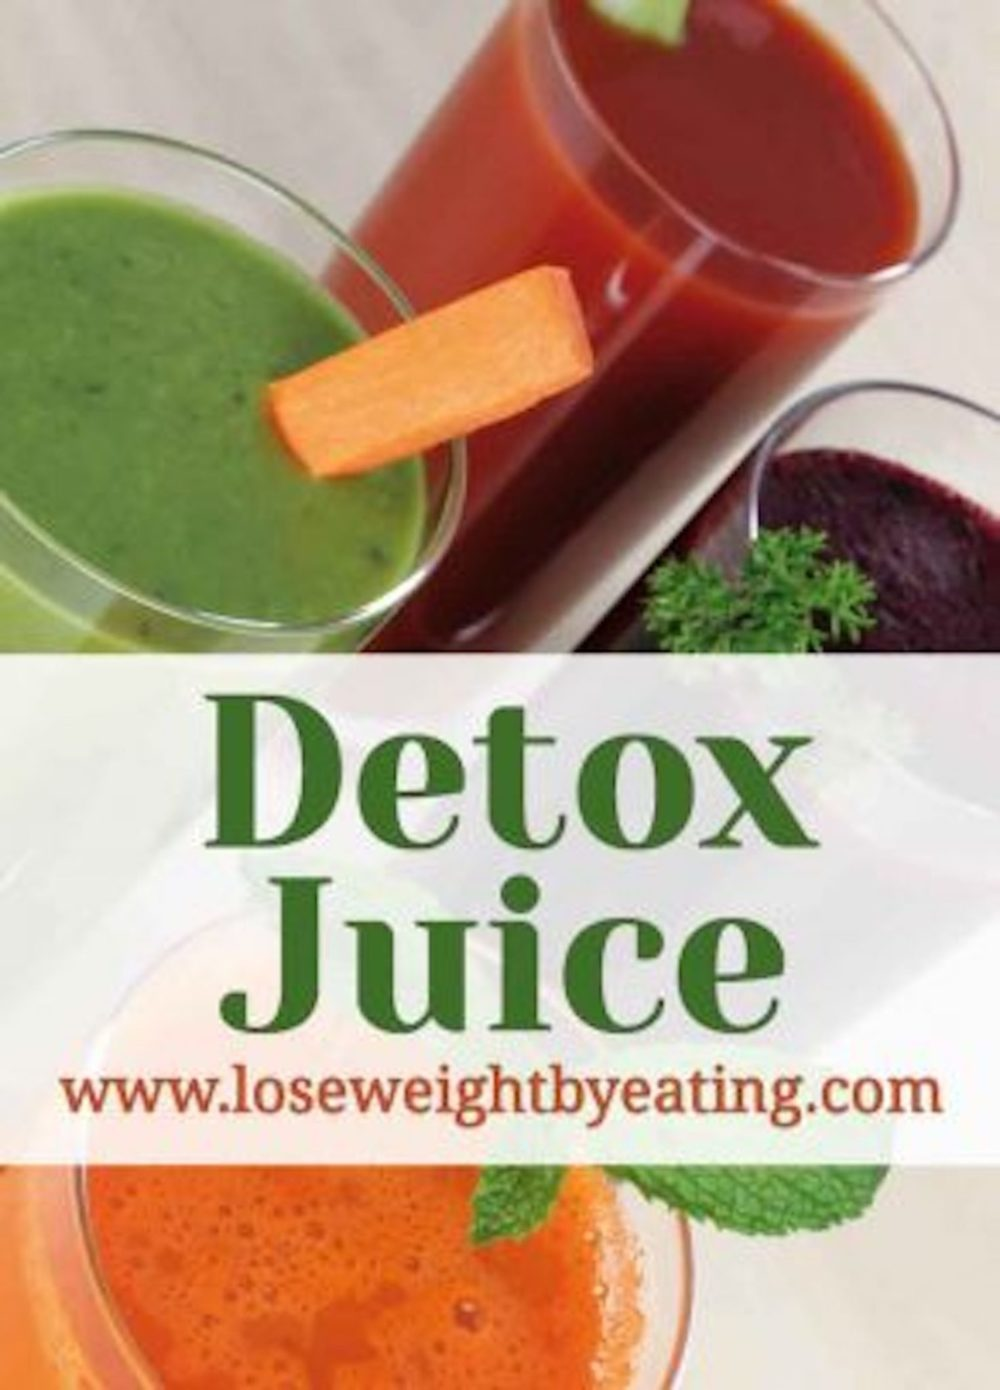 10 Detox Juice Recipes Weight Loss Cleanse Lose Weight